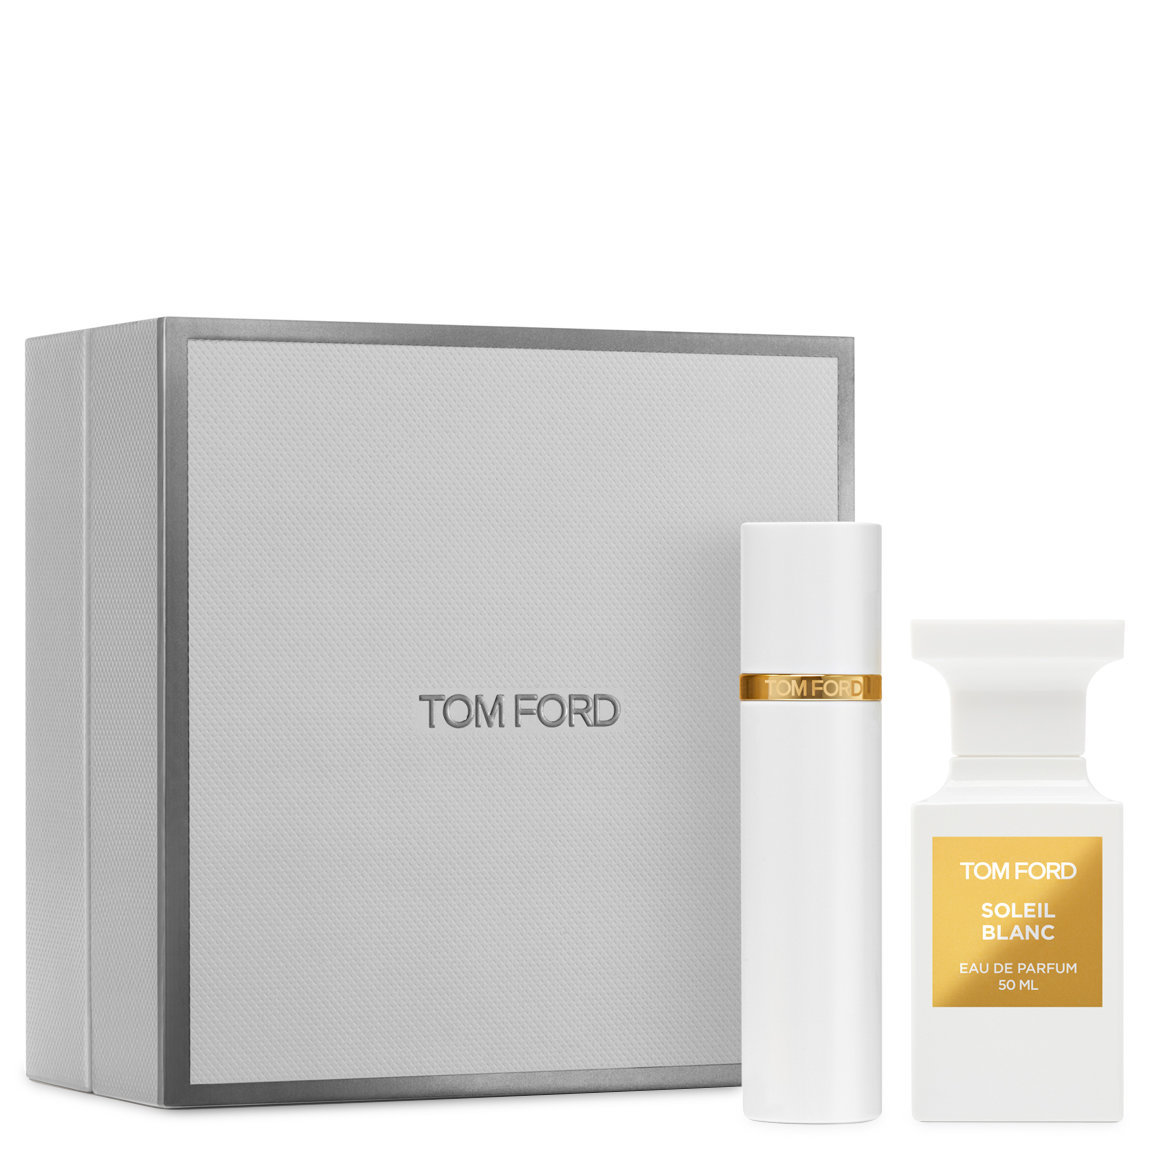 TOM FORD Private Blend Soleil Blanc Set product swatch.